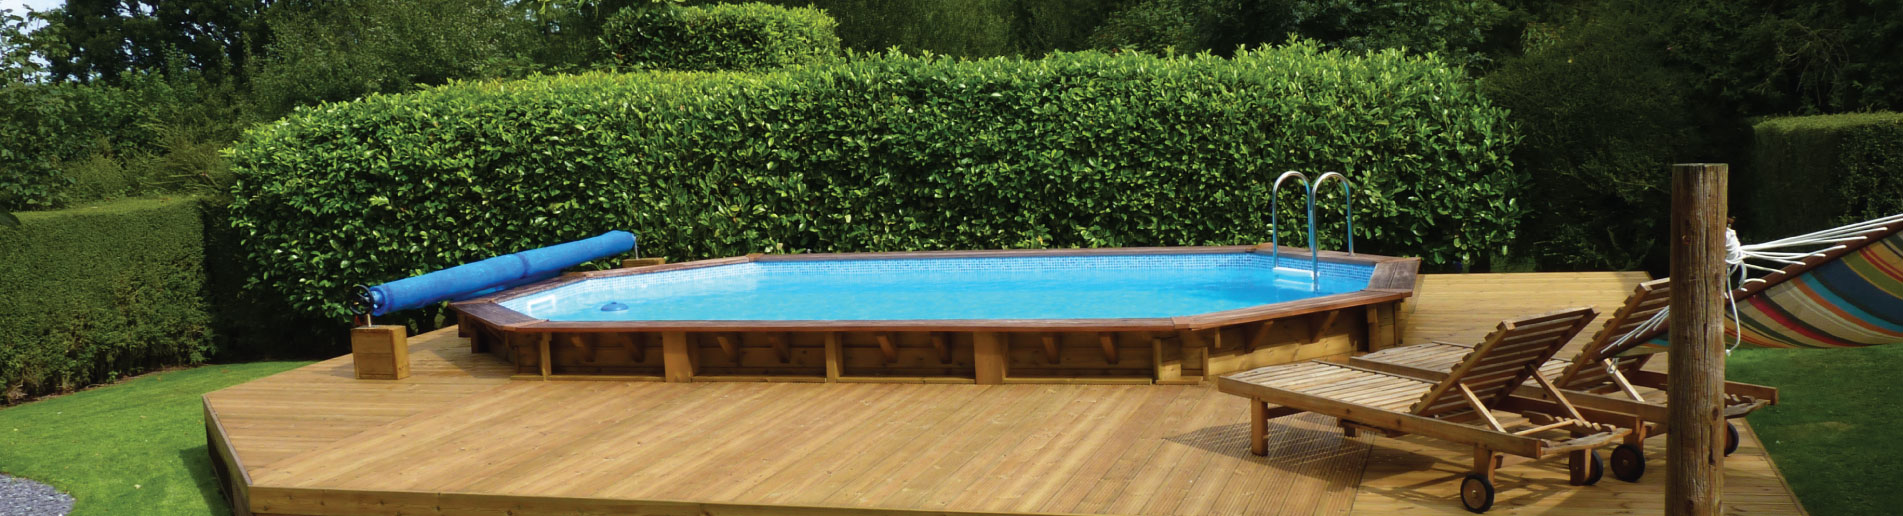 Happy Times with a Plastica Wooden Pool